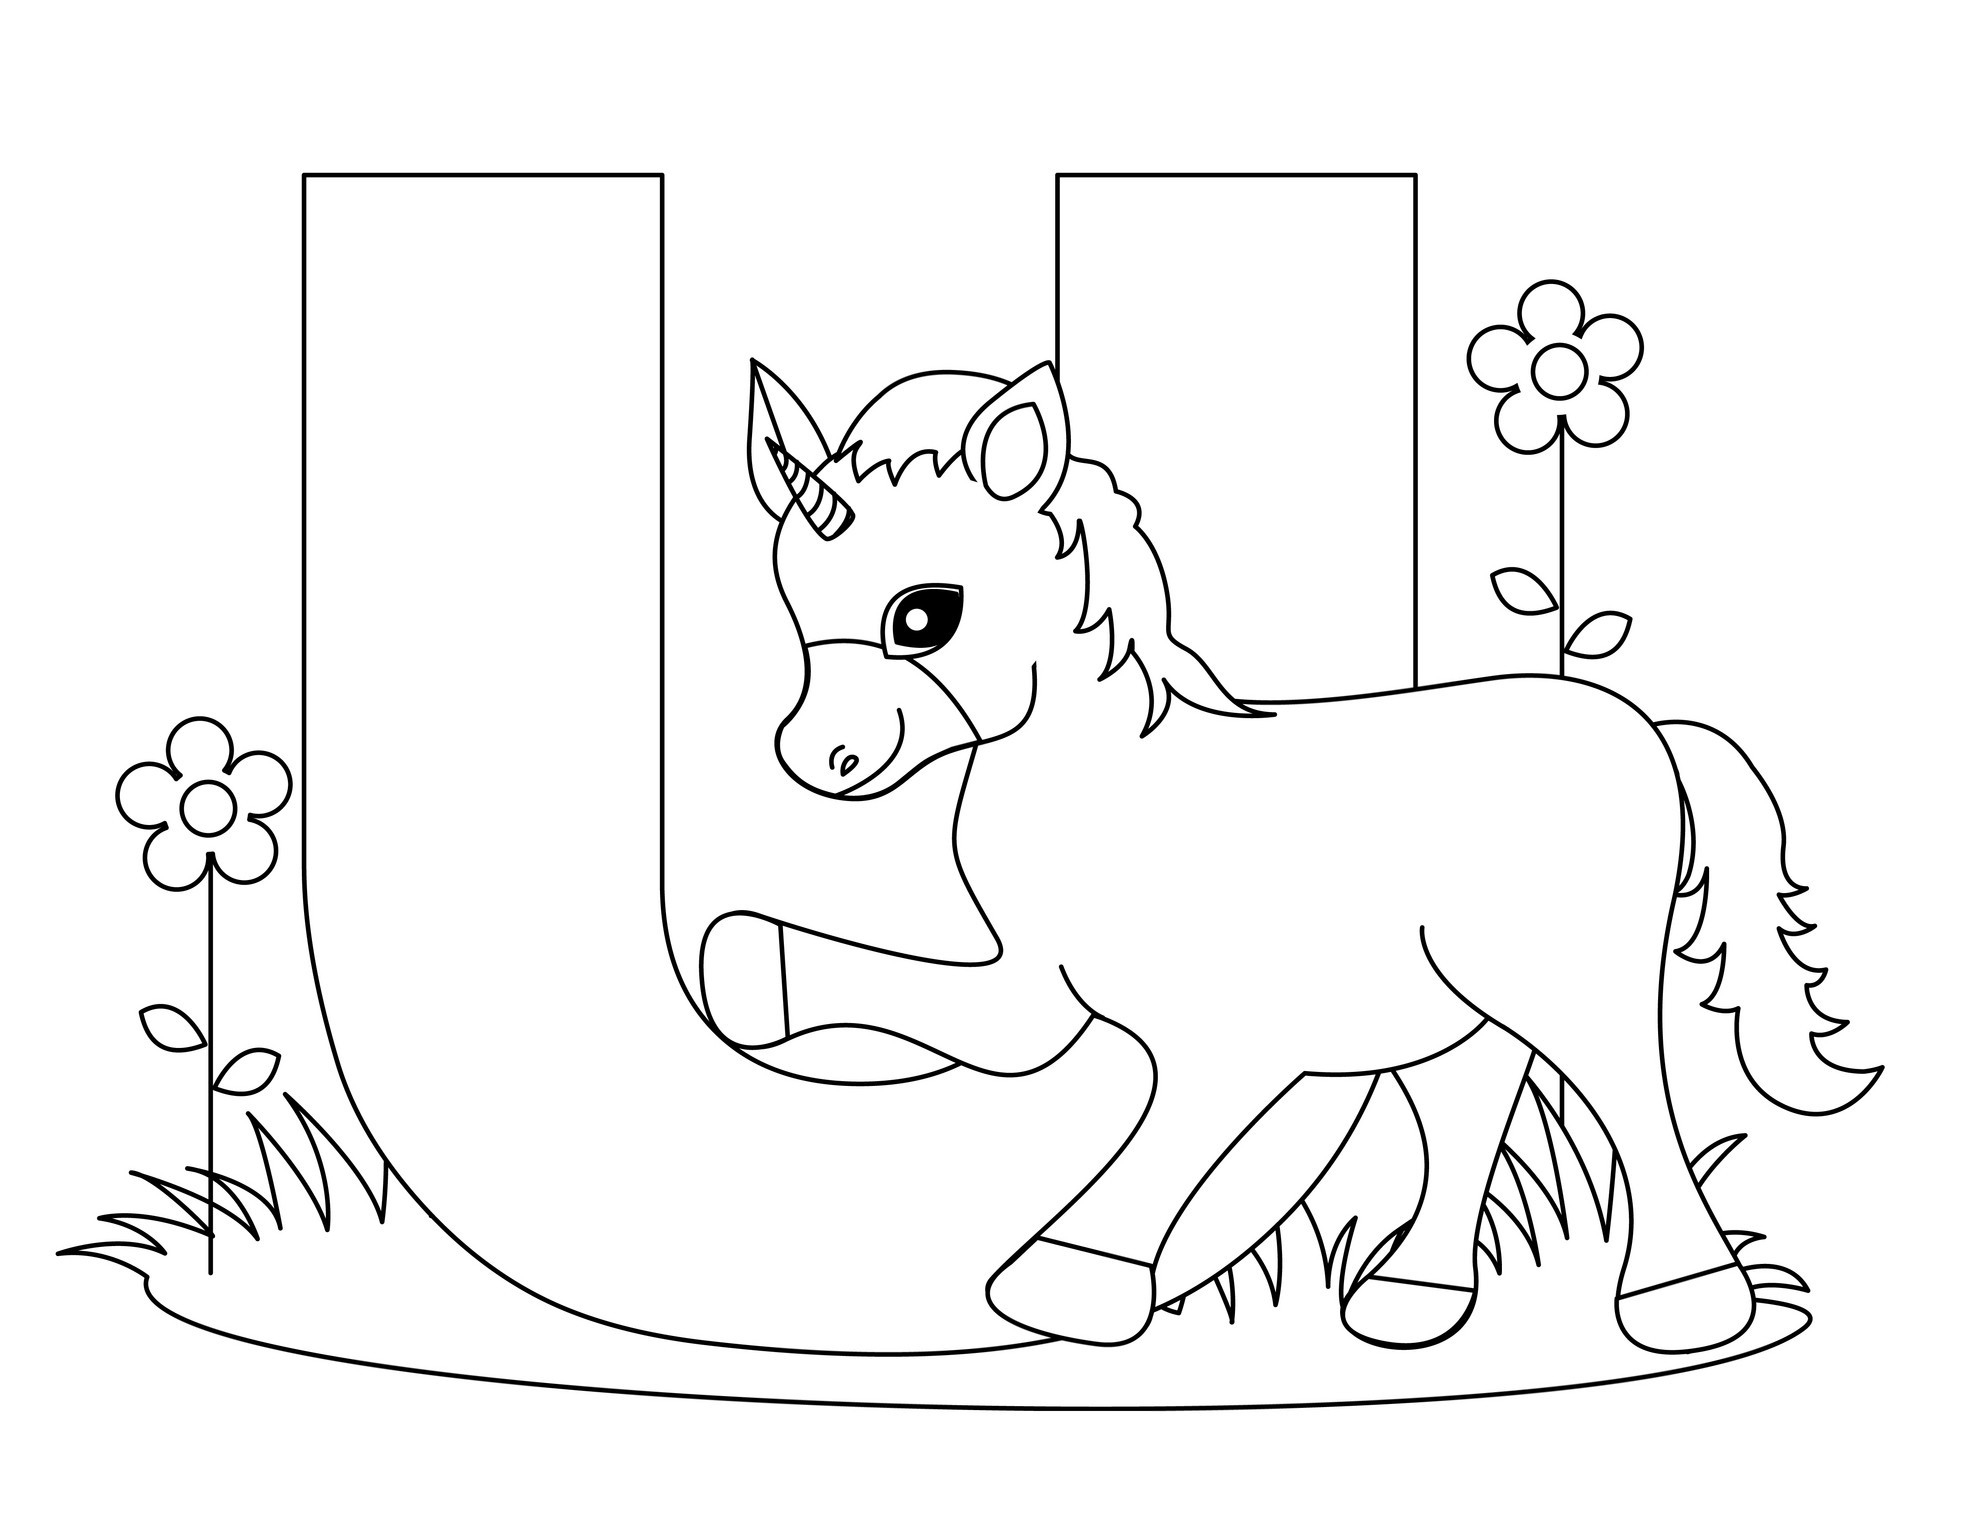 Alphabet Coloring Pages With Pictures : Free printable alphabet coloring pages for kids best